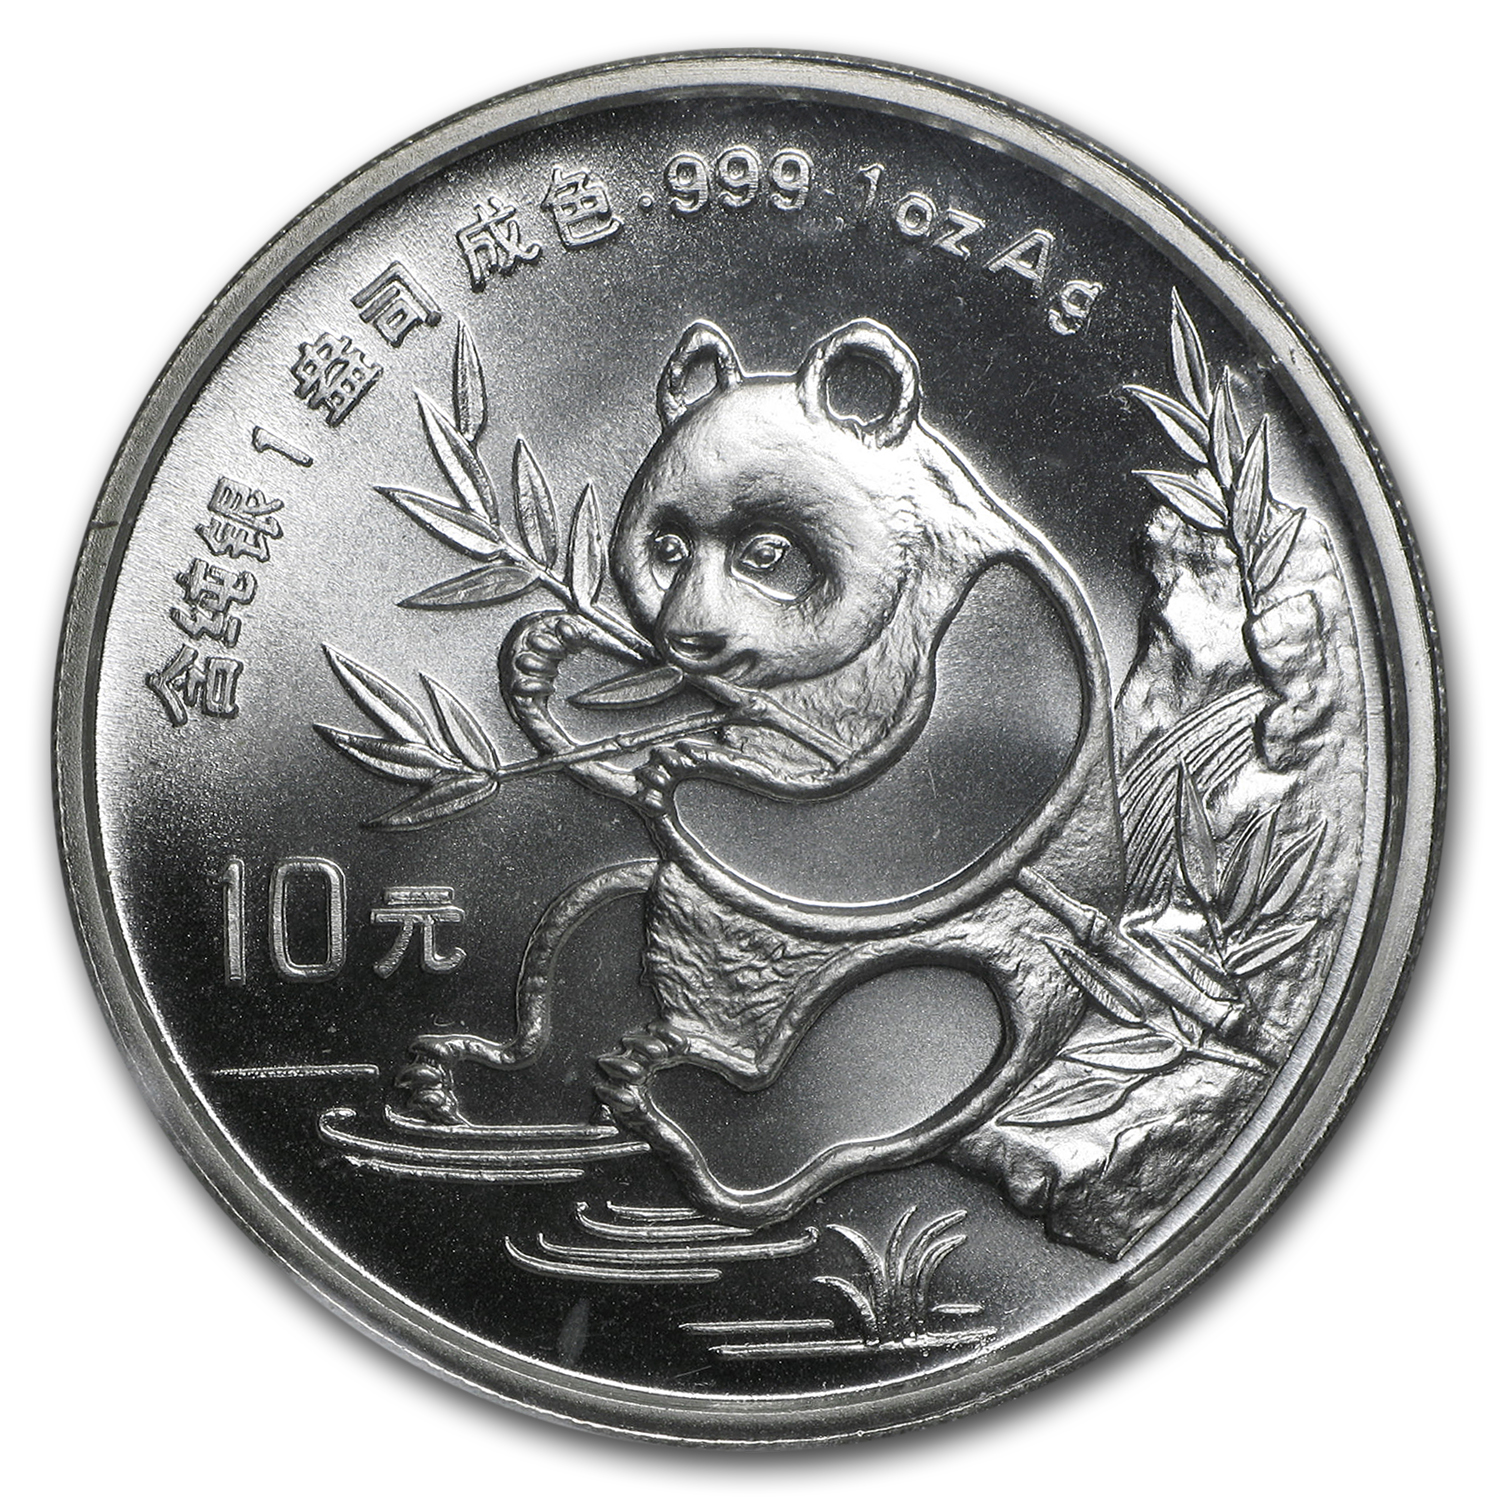 1991 China 1 oz Silver Panda Large Date BU (Sealed)